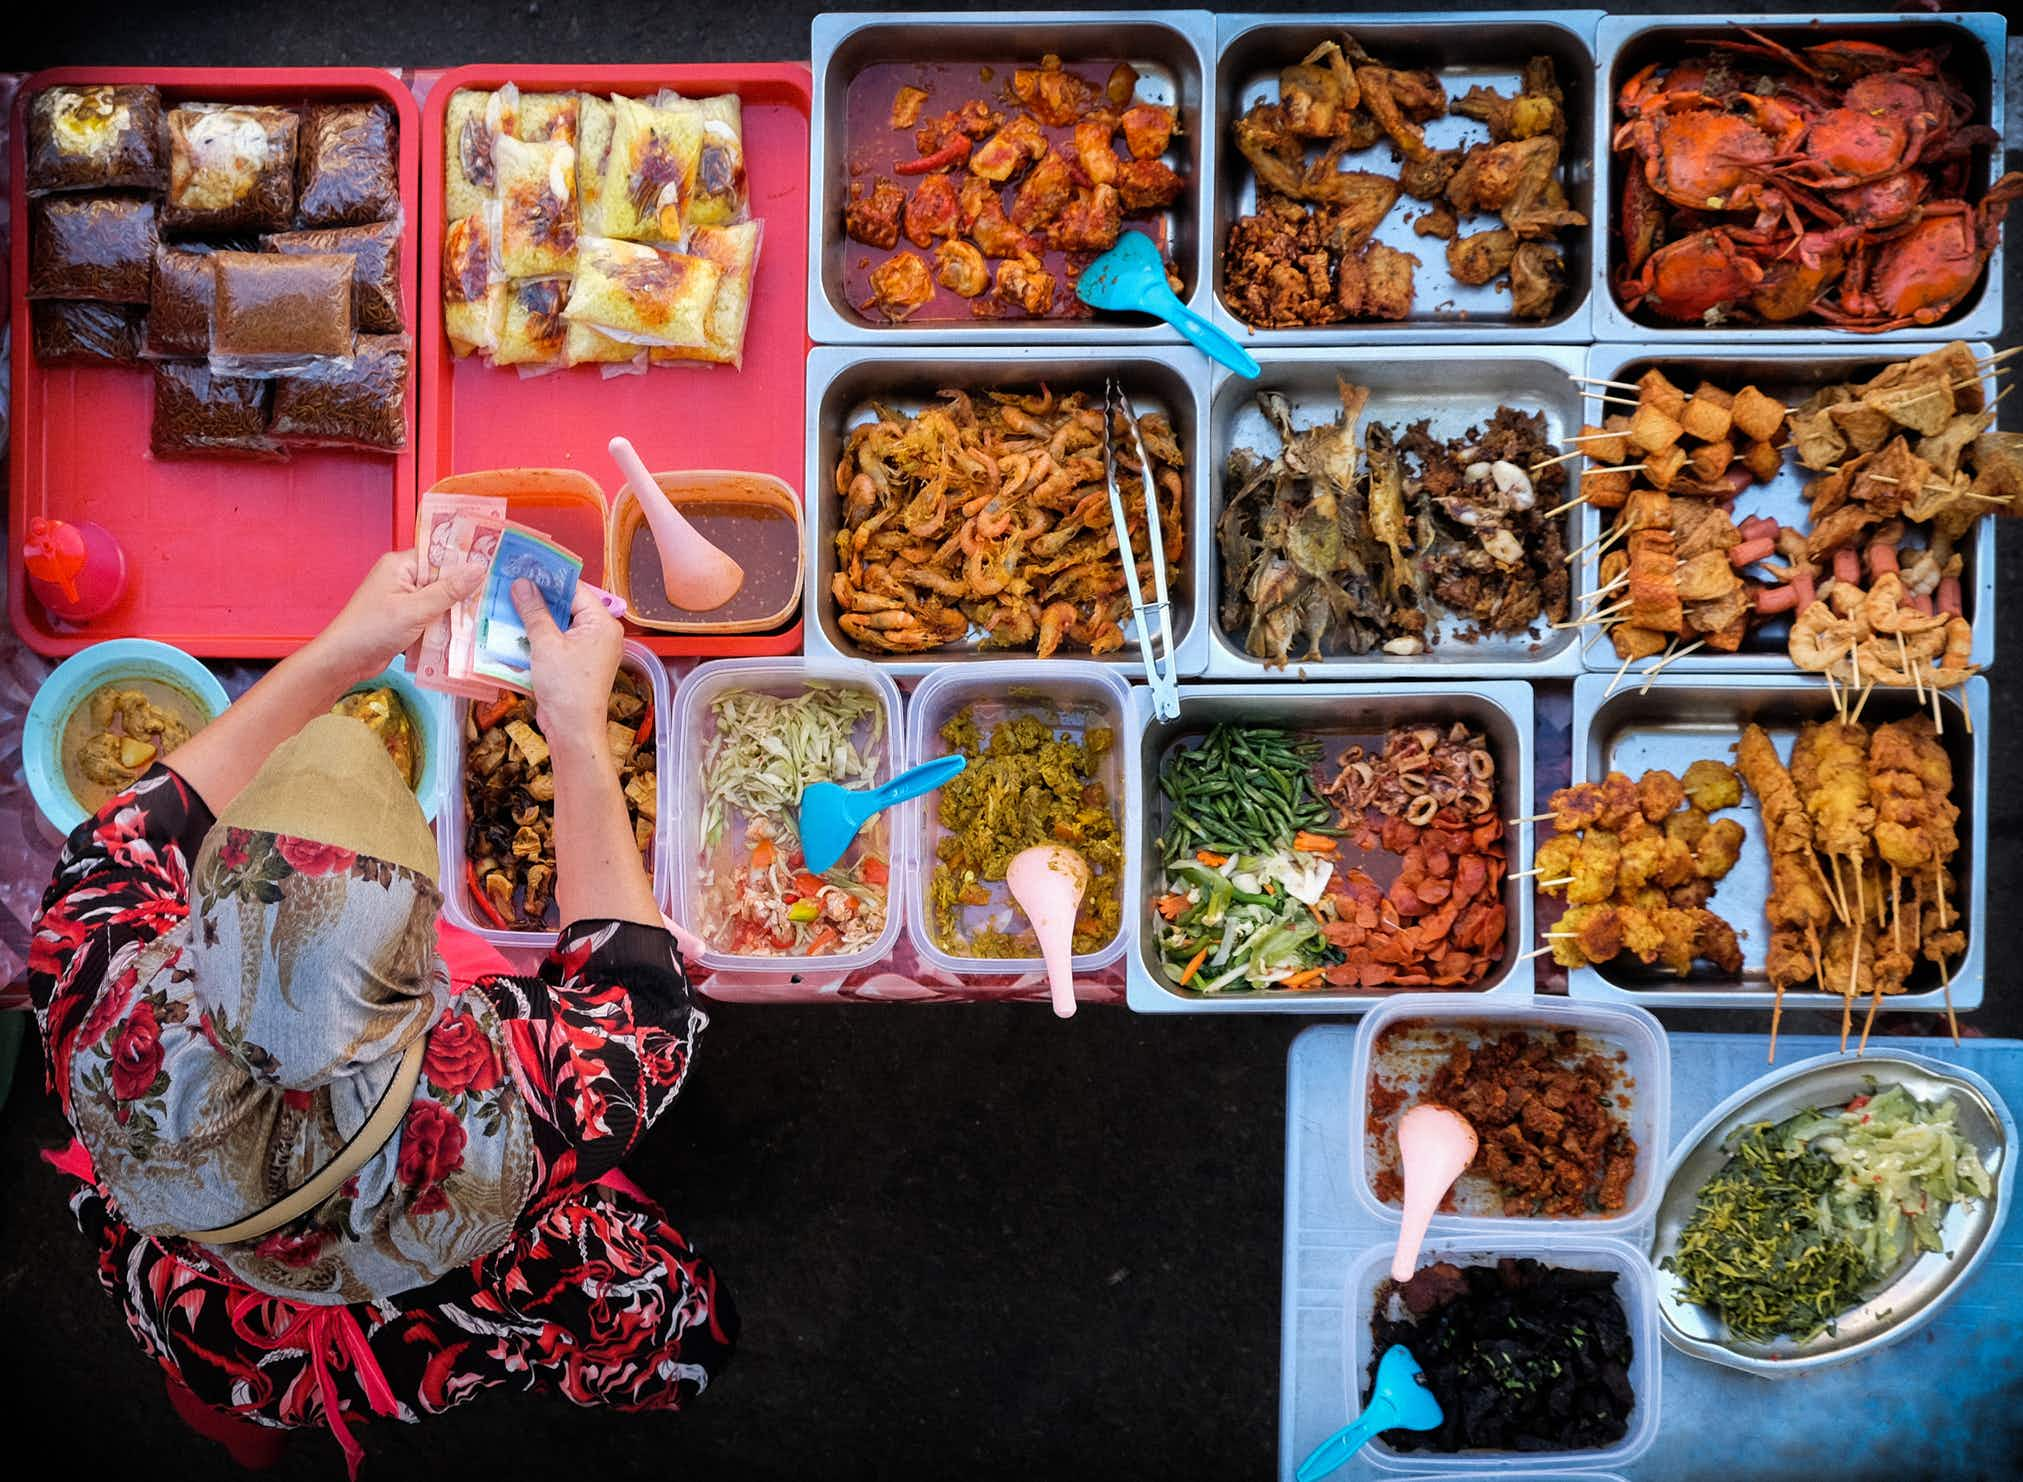 Foodies will want to travel to the cities with the most diverse food scenes